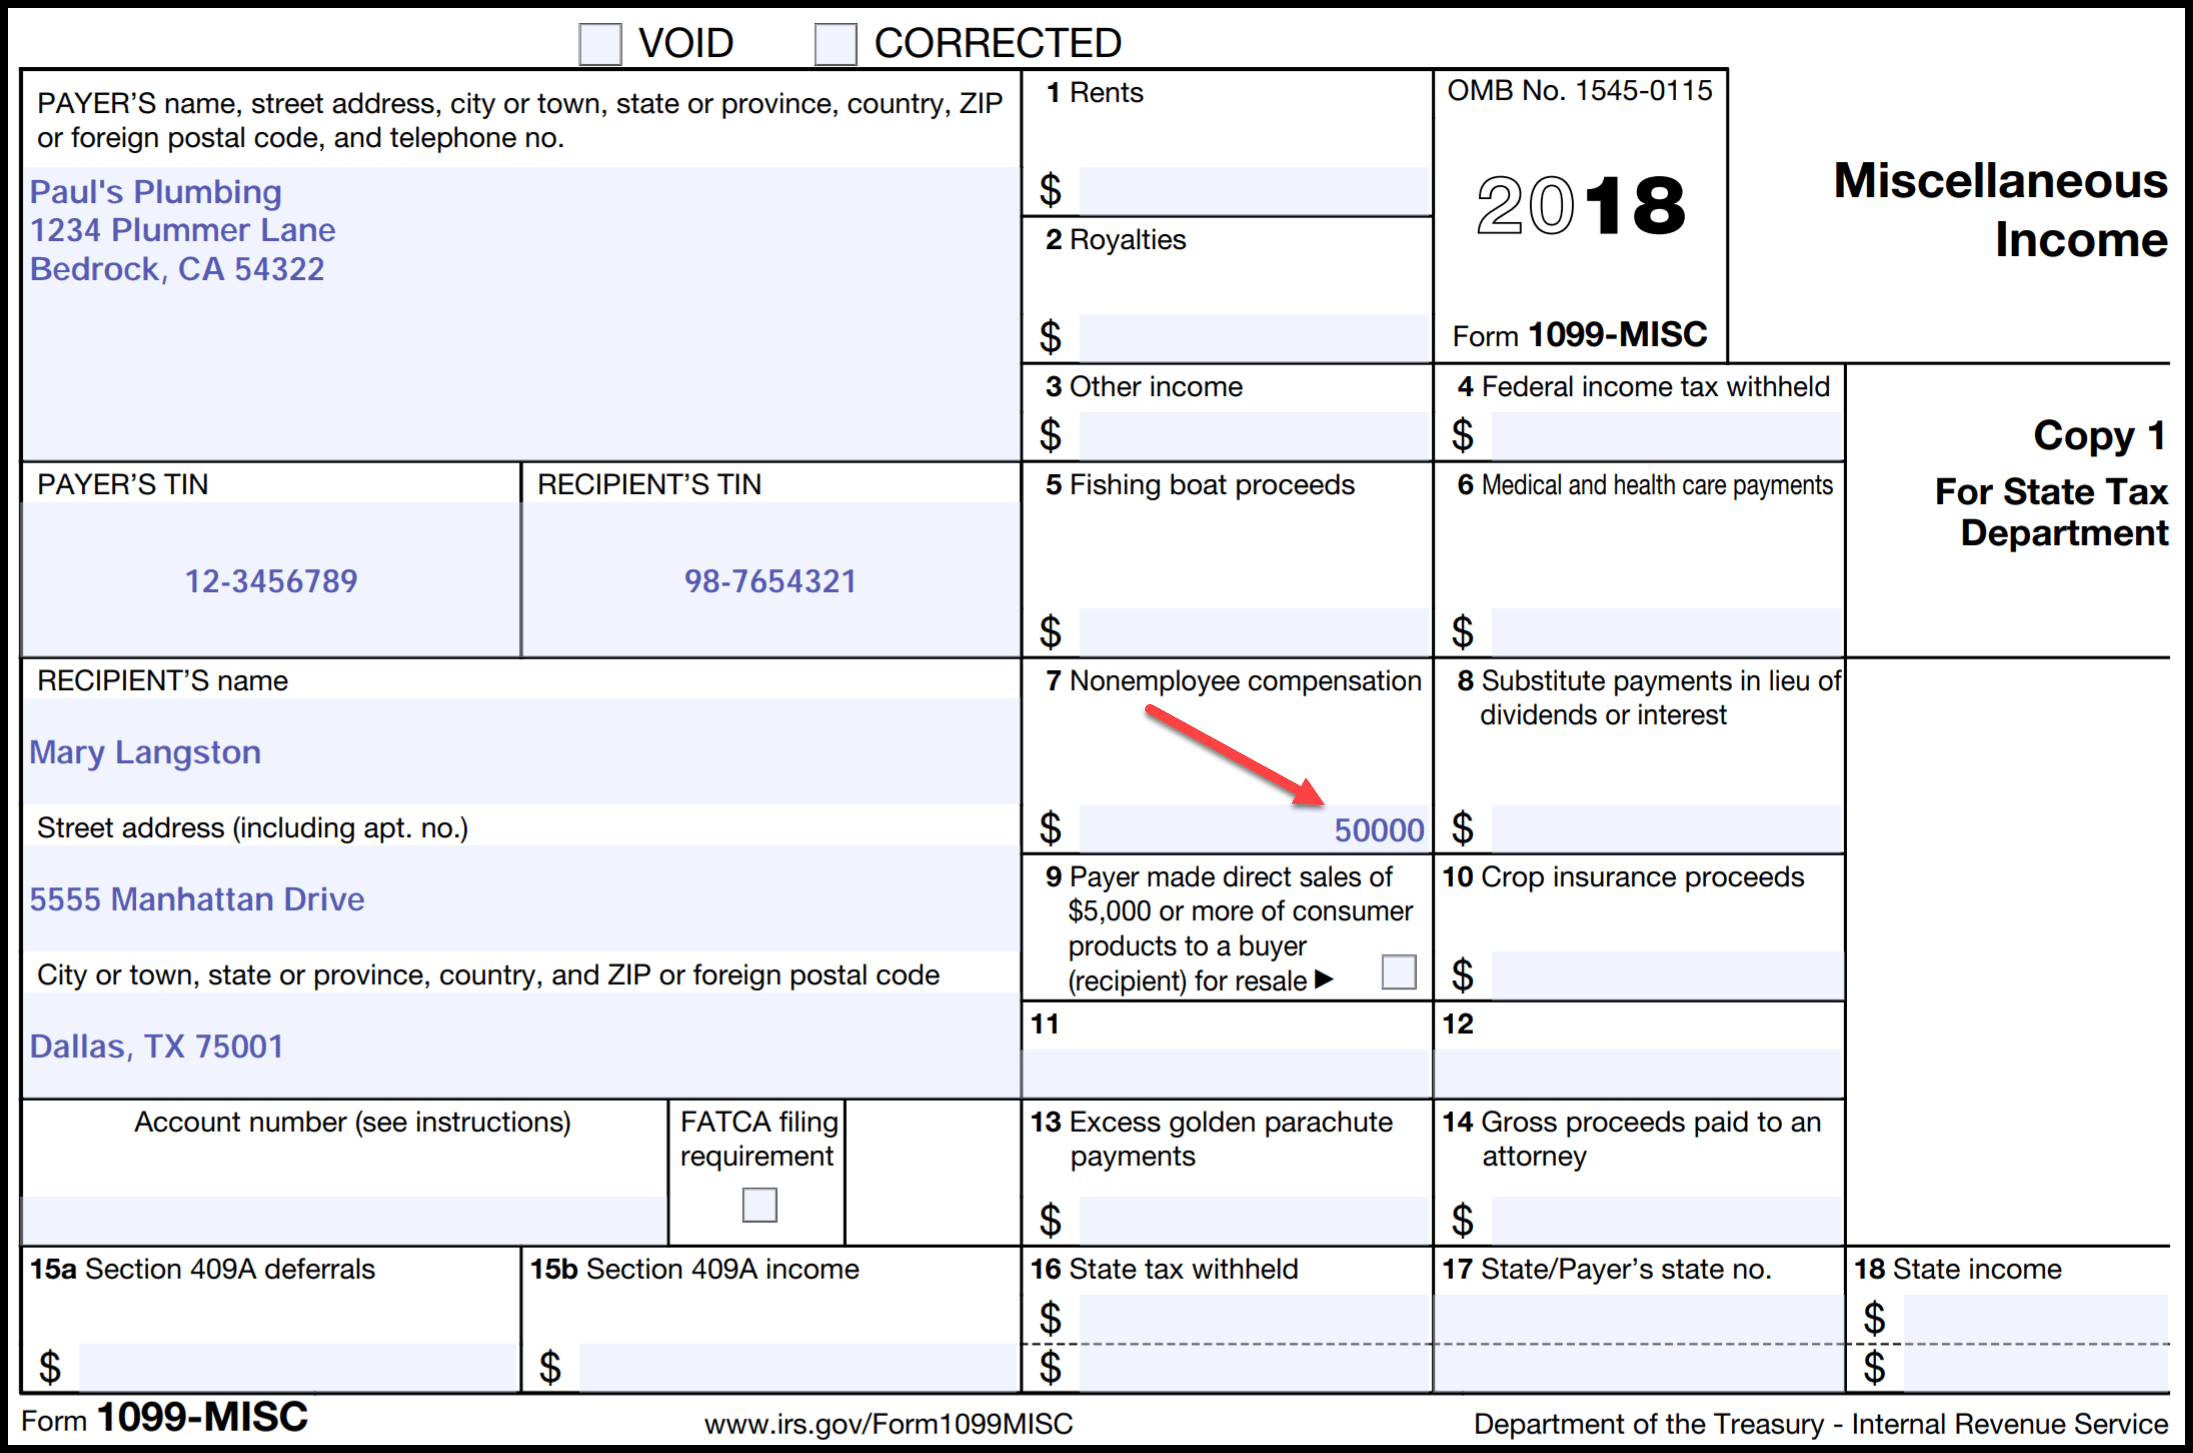 Irs Form 1099 Reporting For Small Business Owners - Free Printable 1099 Form 2018